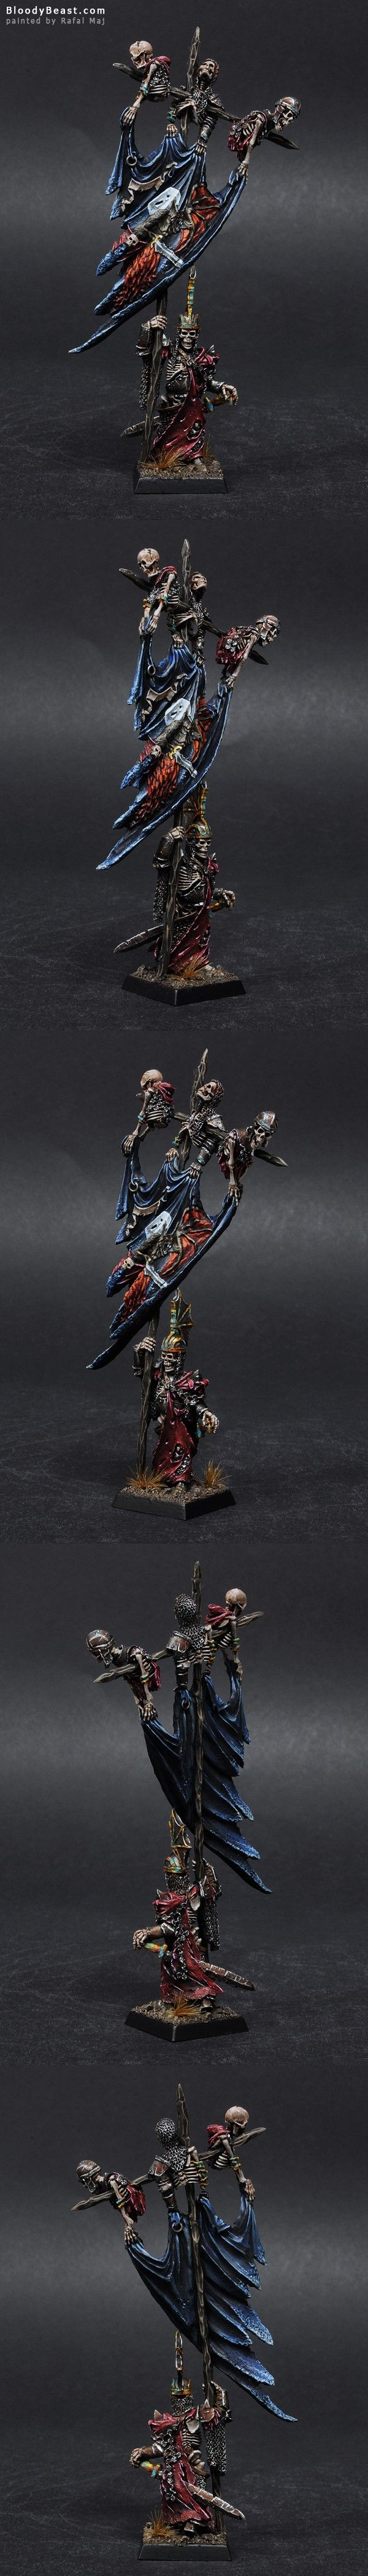 Vampire Counts Wight King Battle Standard Bearer